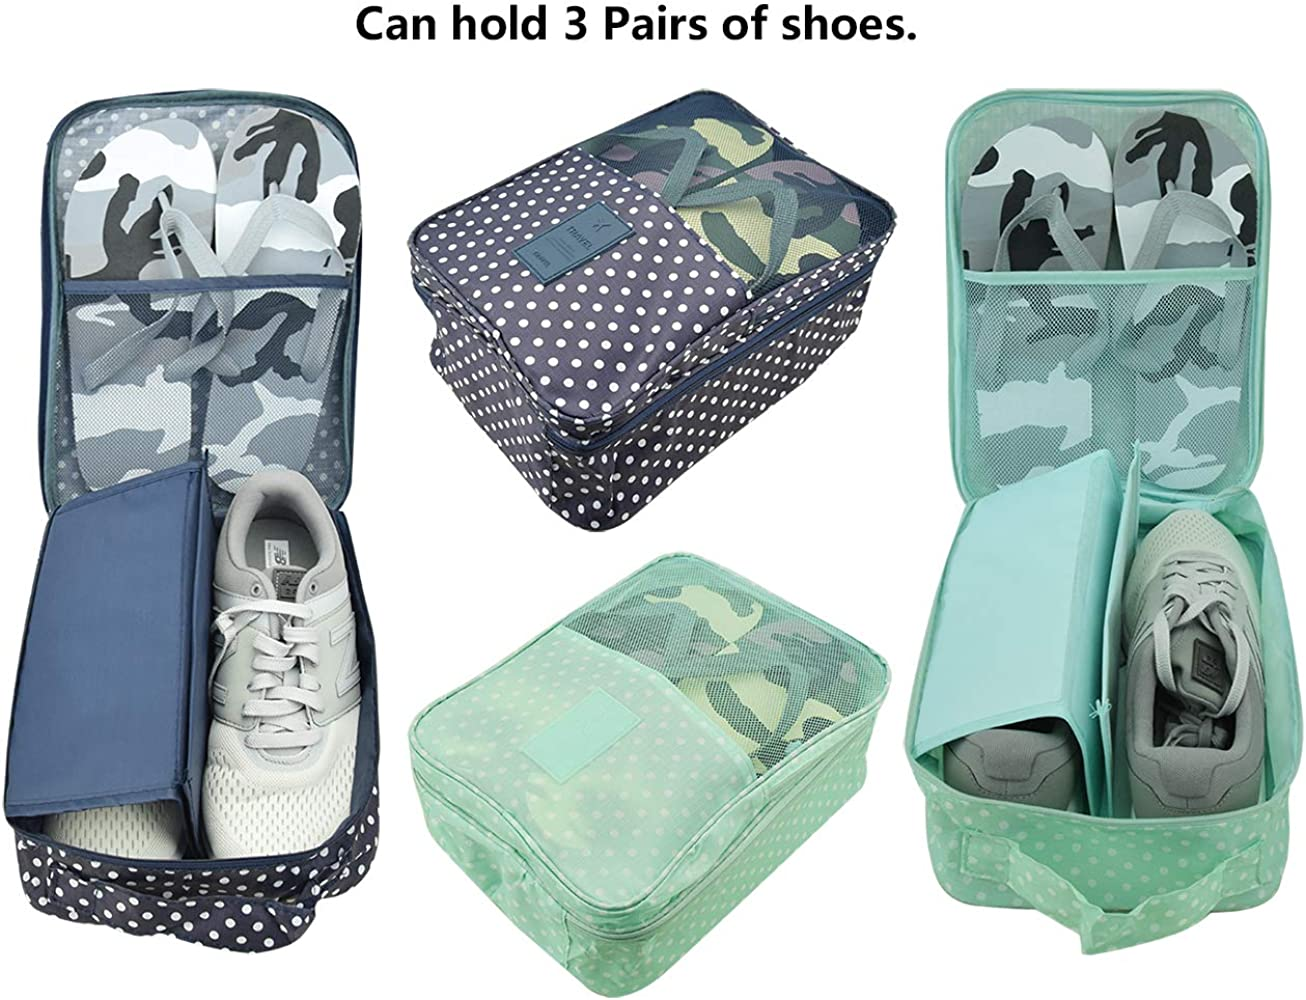 Portable Water Resistant Travel Storage Bags Organizer For Clothe Shoes Socks